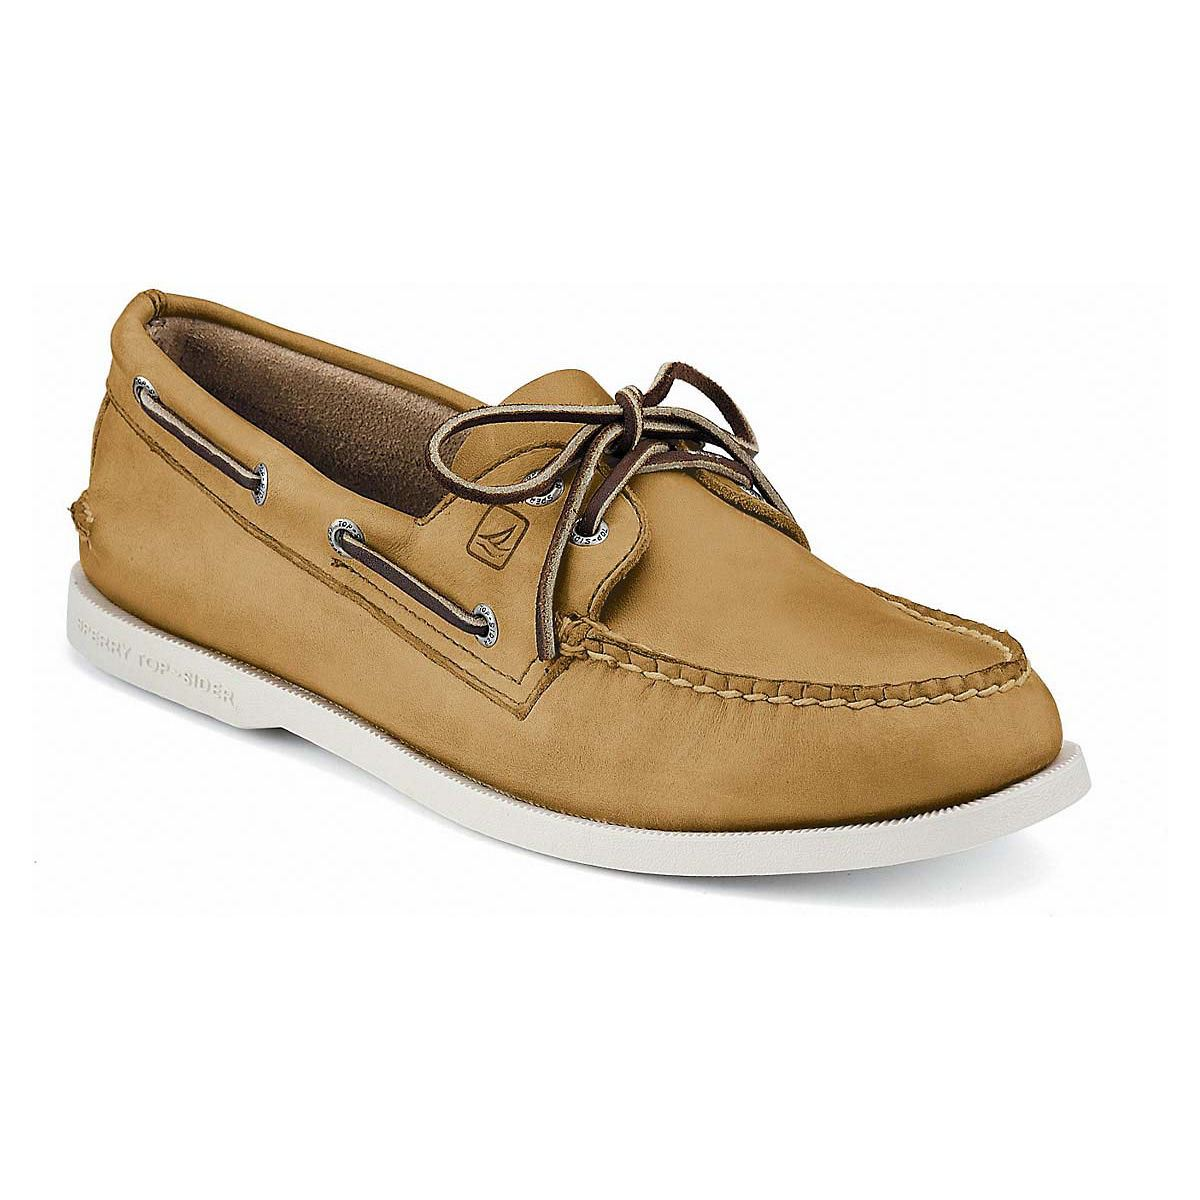 Sperry Top Sider Men S Authentic Original Boat Shoe Oatmeal